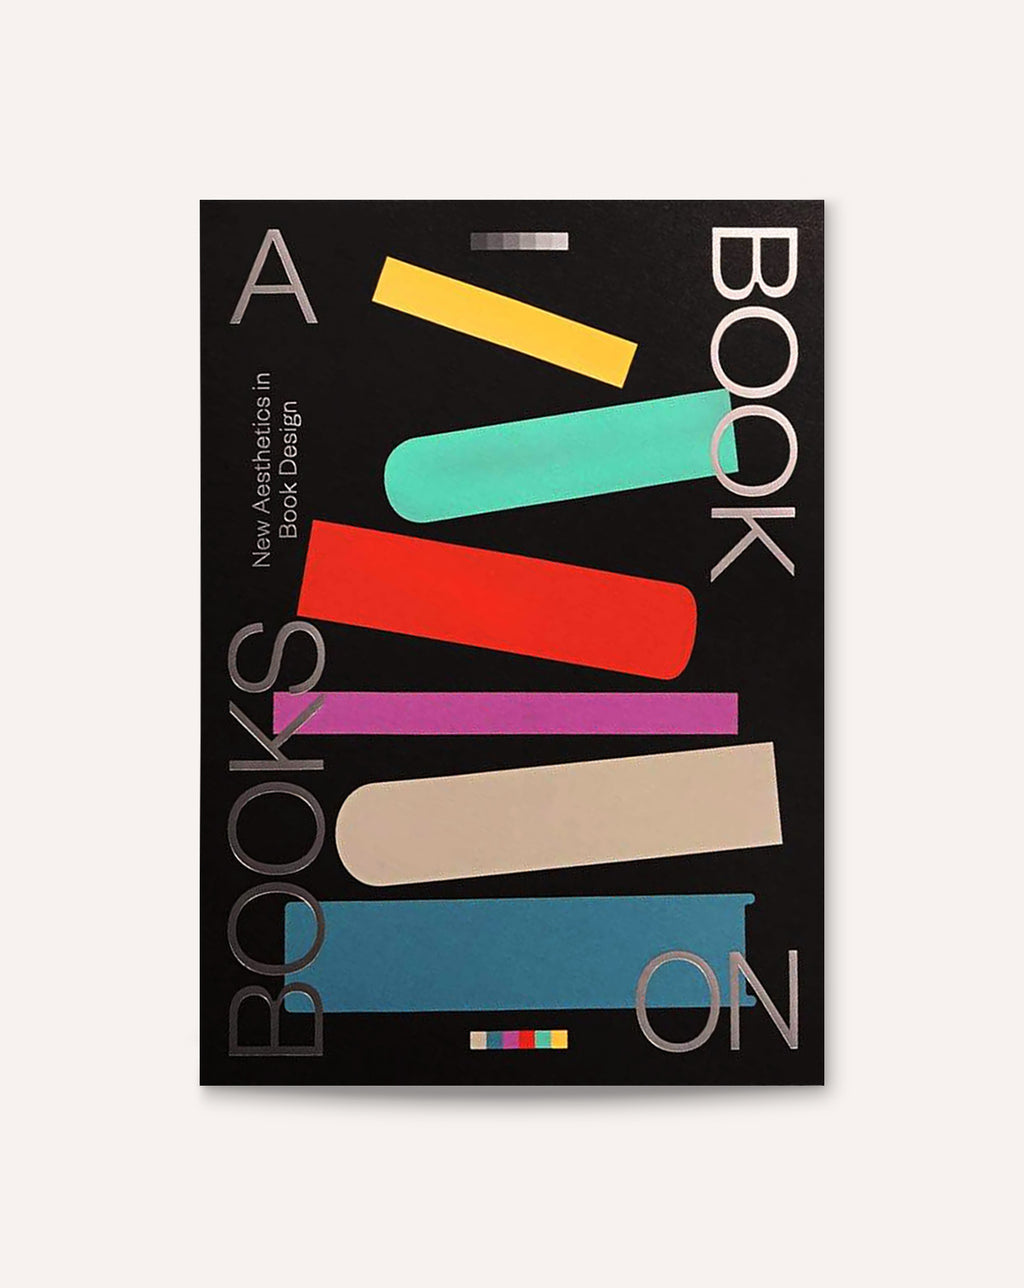 PRE-ORDER: A Book on Books: New Aesthetics in Book Design